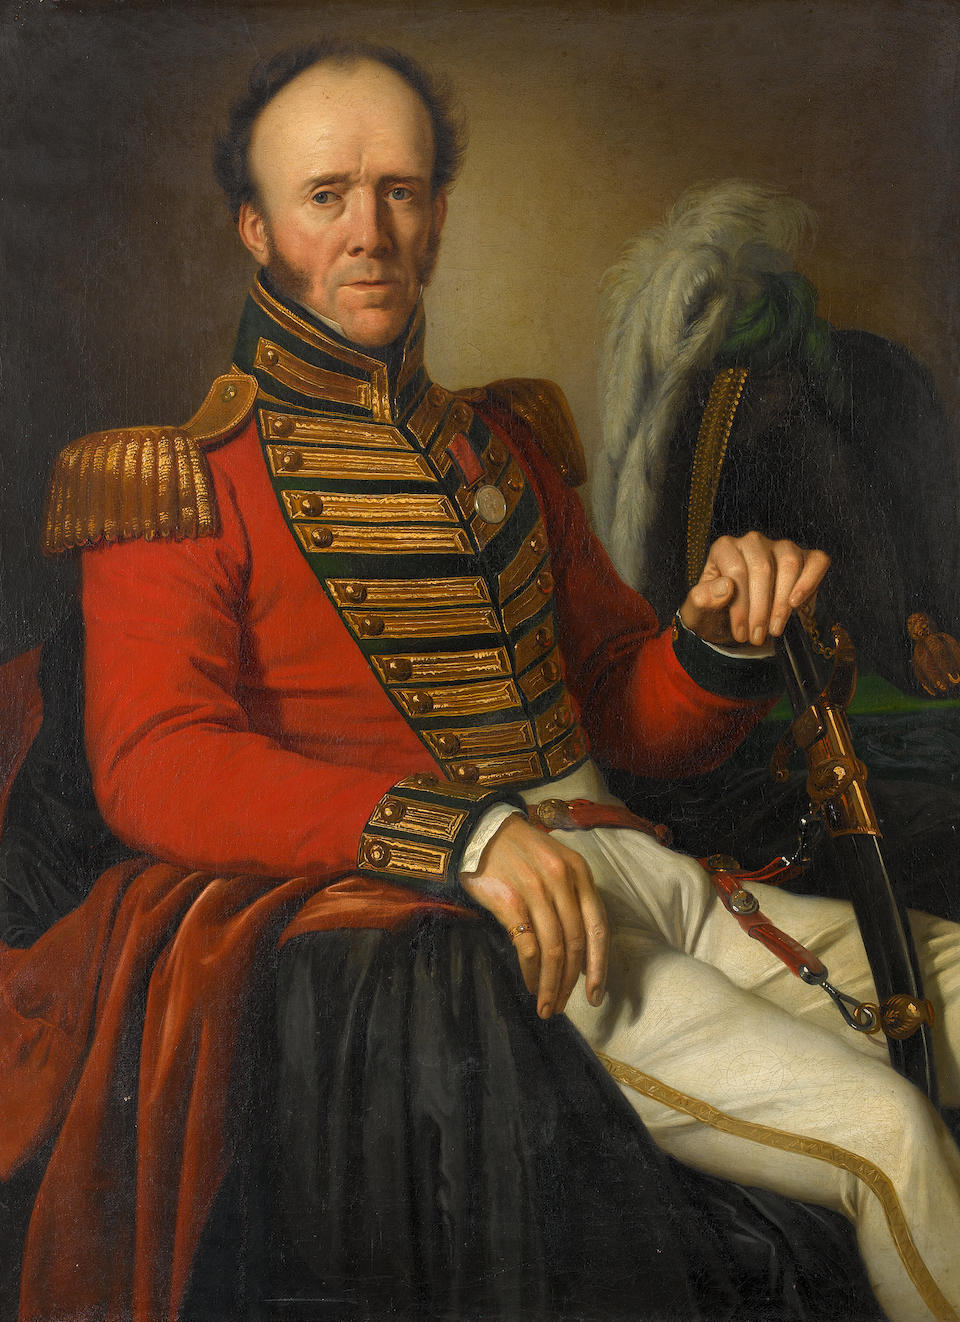 Giuseppe Bezzuoli (Italian, 1784-1855) Portrait of a British cavalry officer, three quarter length seated, in military attire wearing a Waterloo medal; Portrait of his wife, three quarter length seated, wearing a green dress, holding a book with a view of Florence in the background